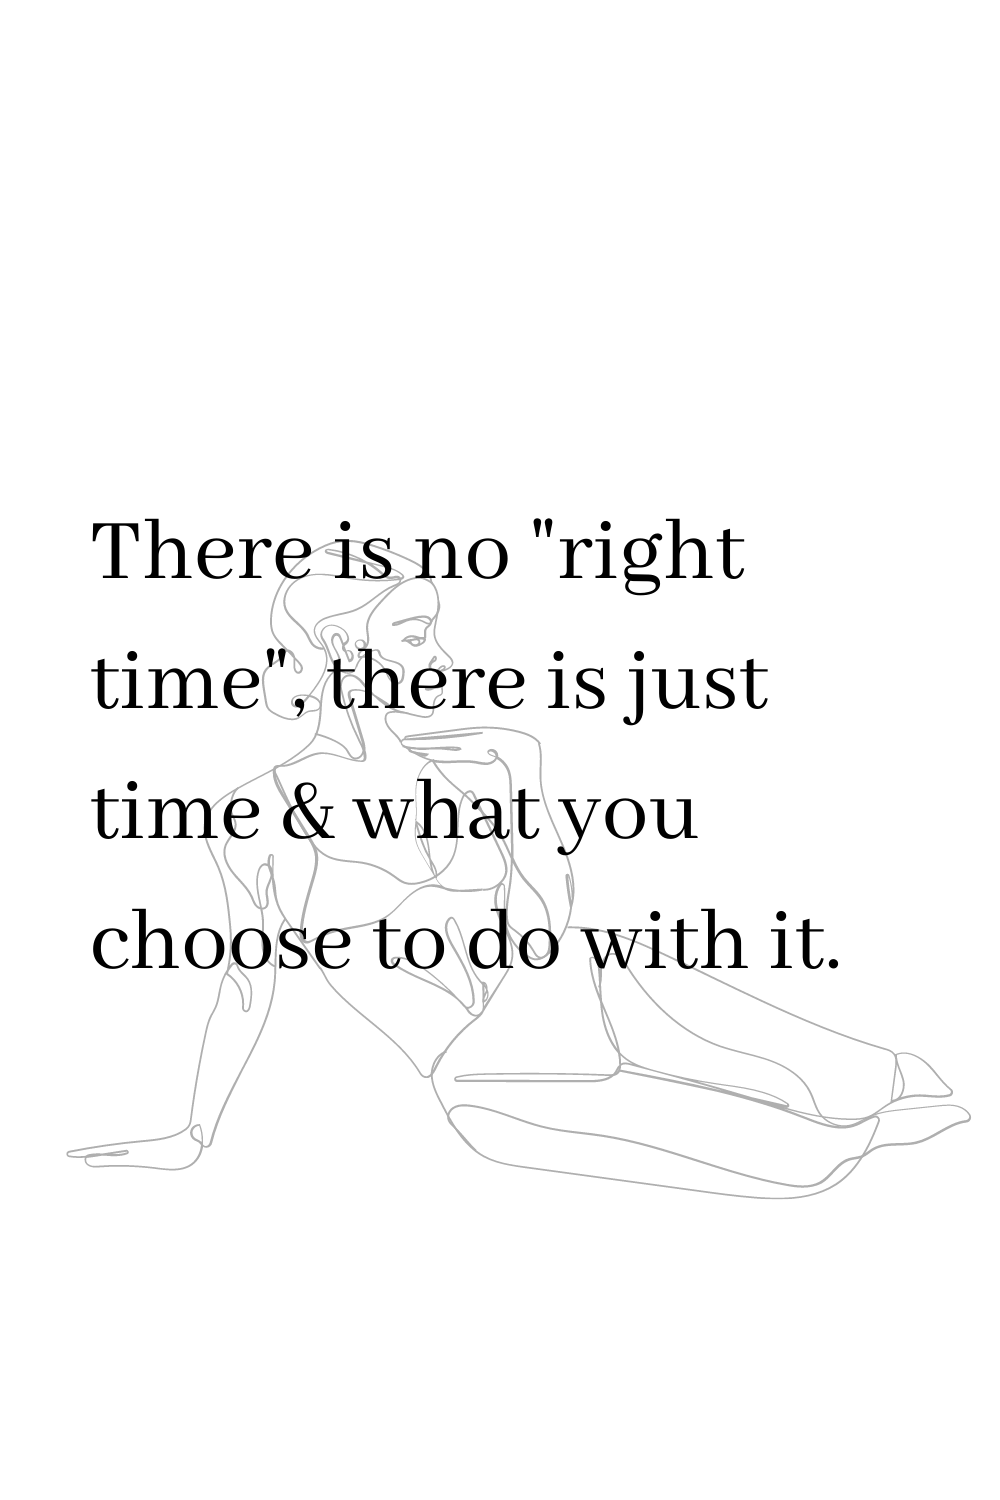 """There is no """"right time"""", there is just time & what you choose to do with it."""